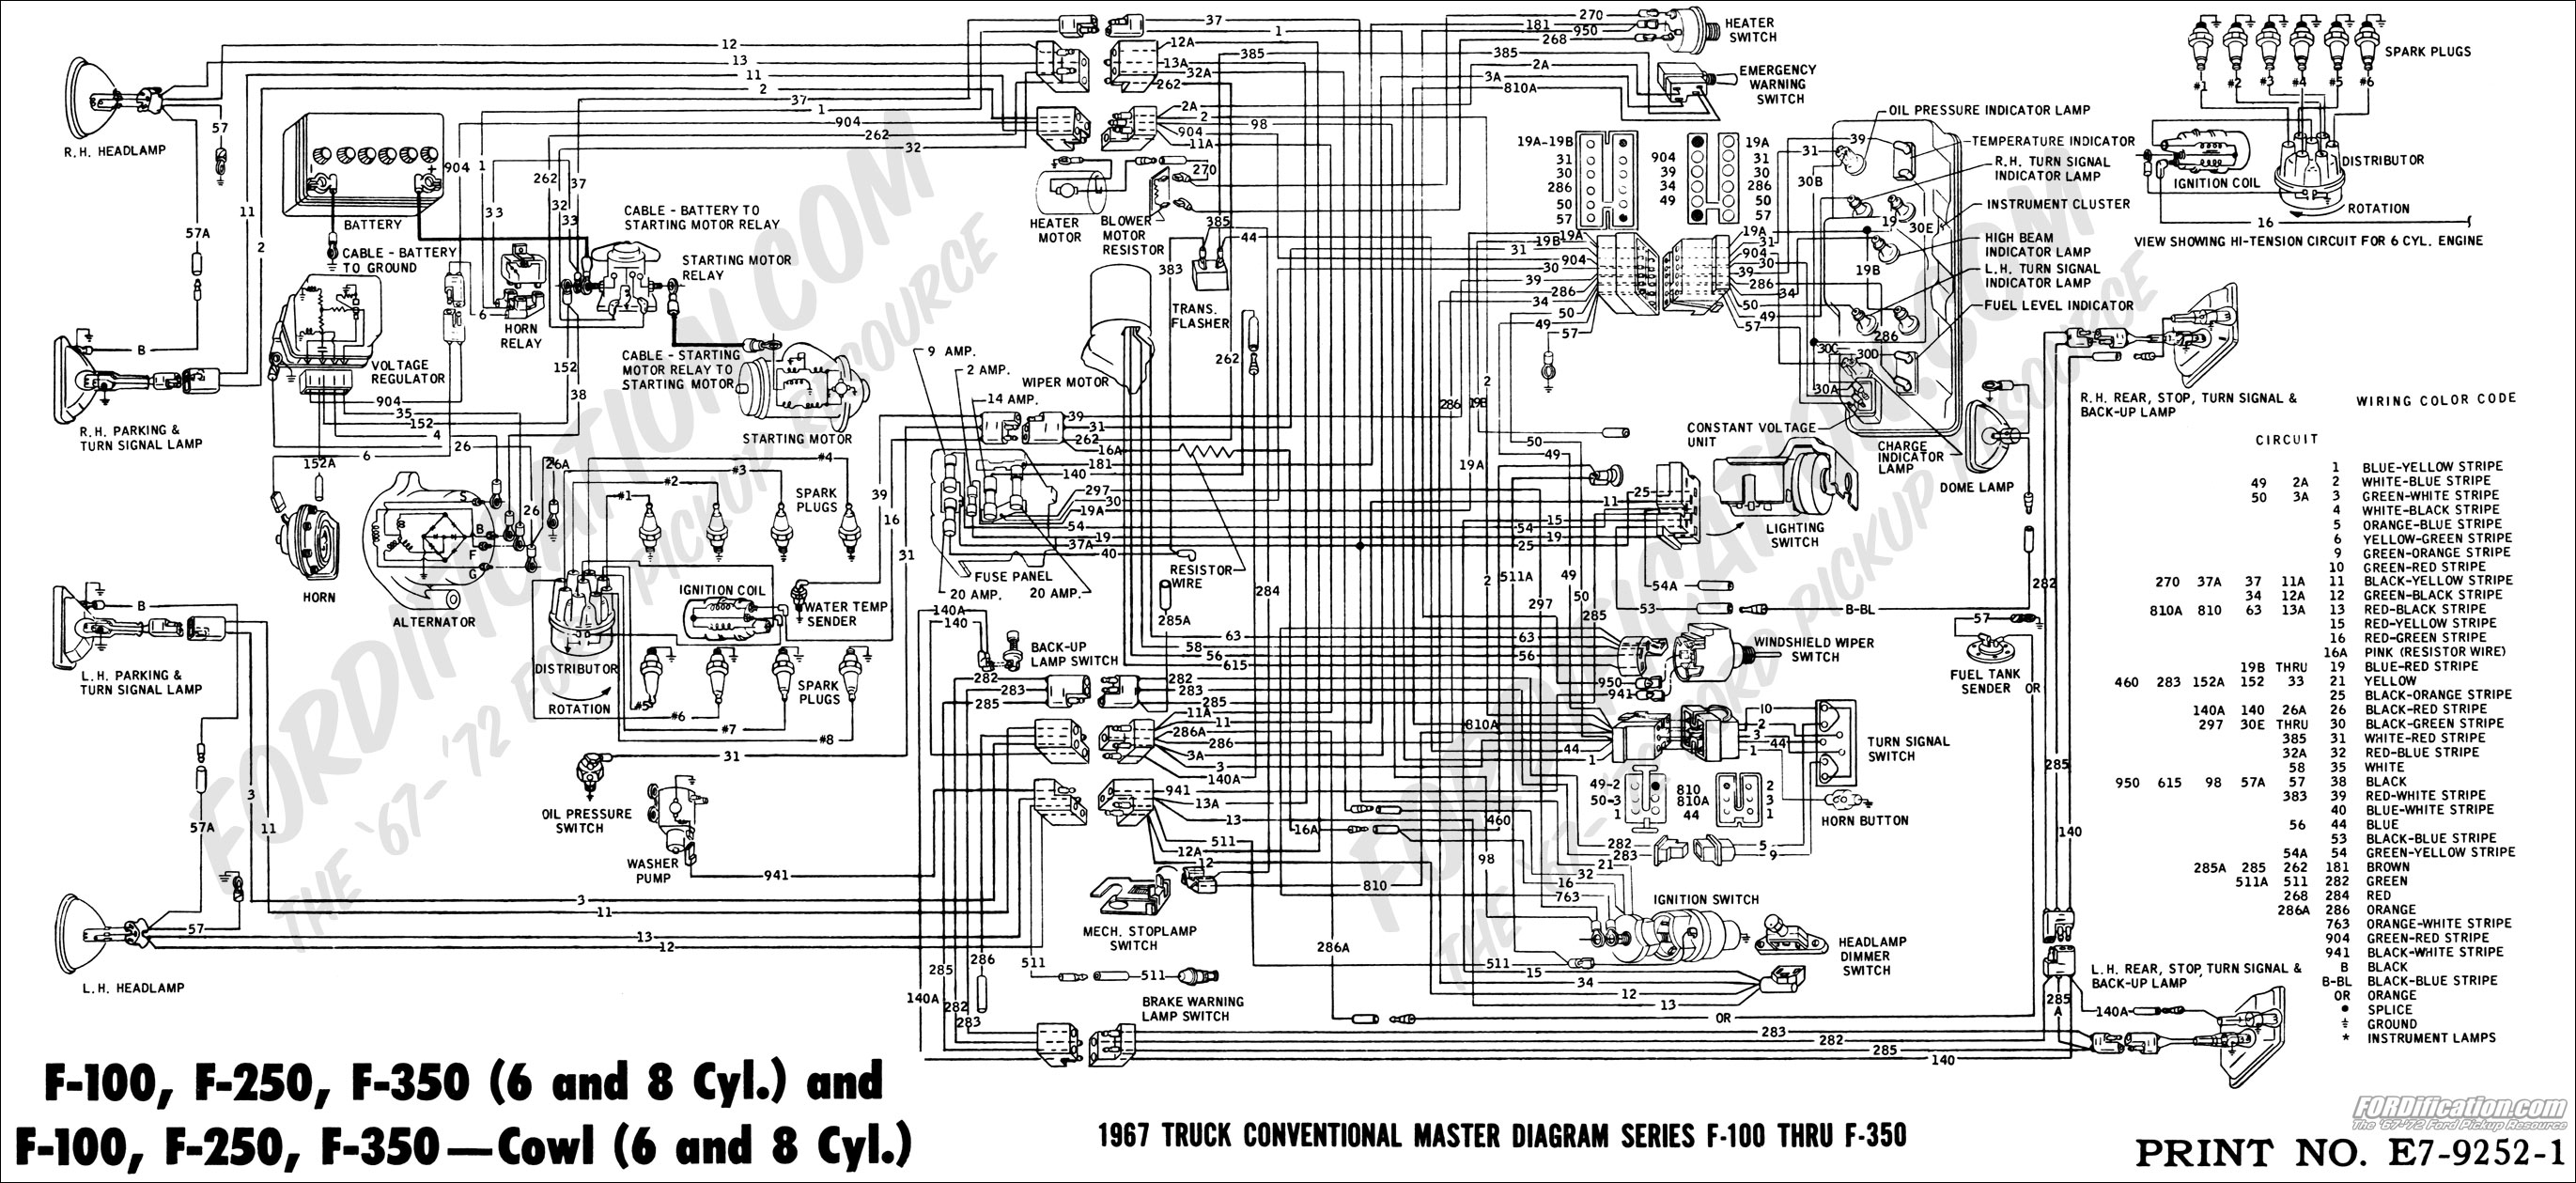 67masterdiagram ford truck technical drawings and schematics section h wiring truck wiring schematics at bayanpartner.co